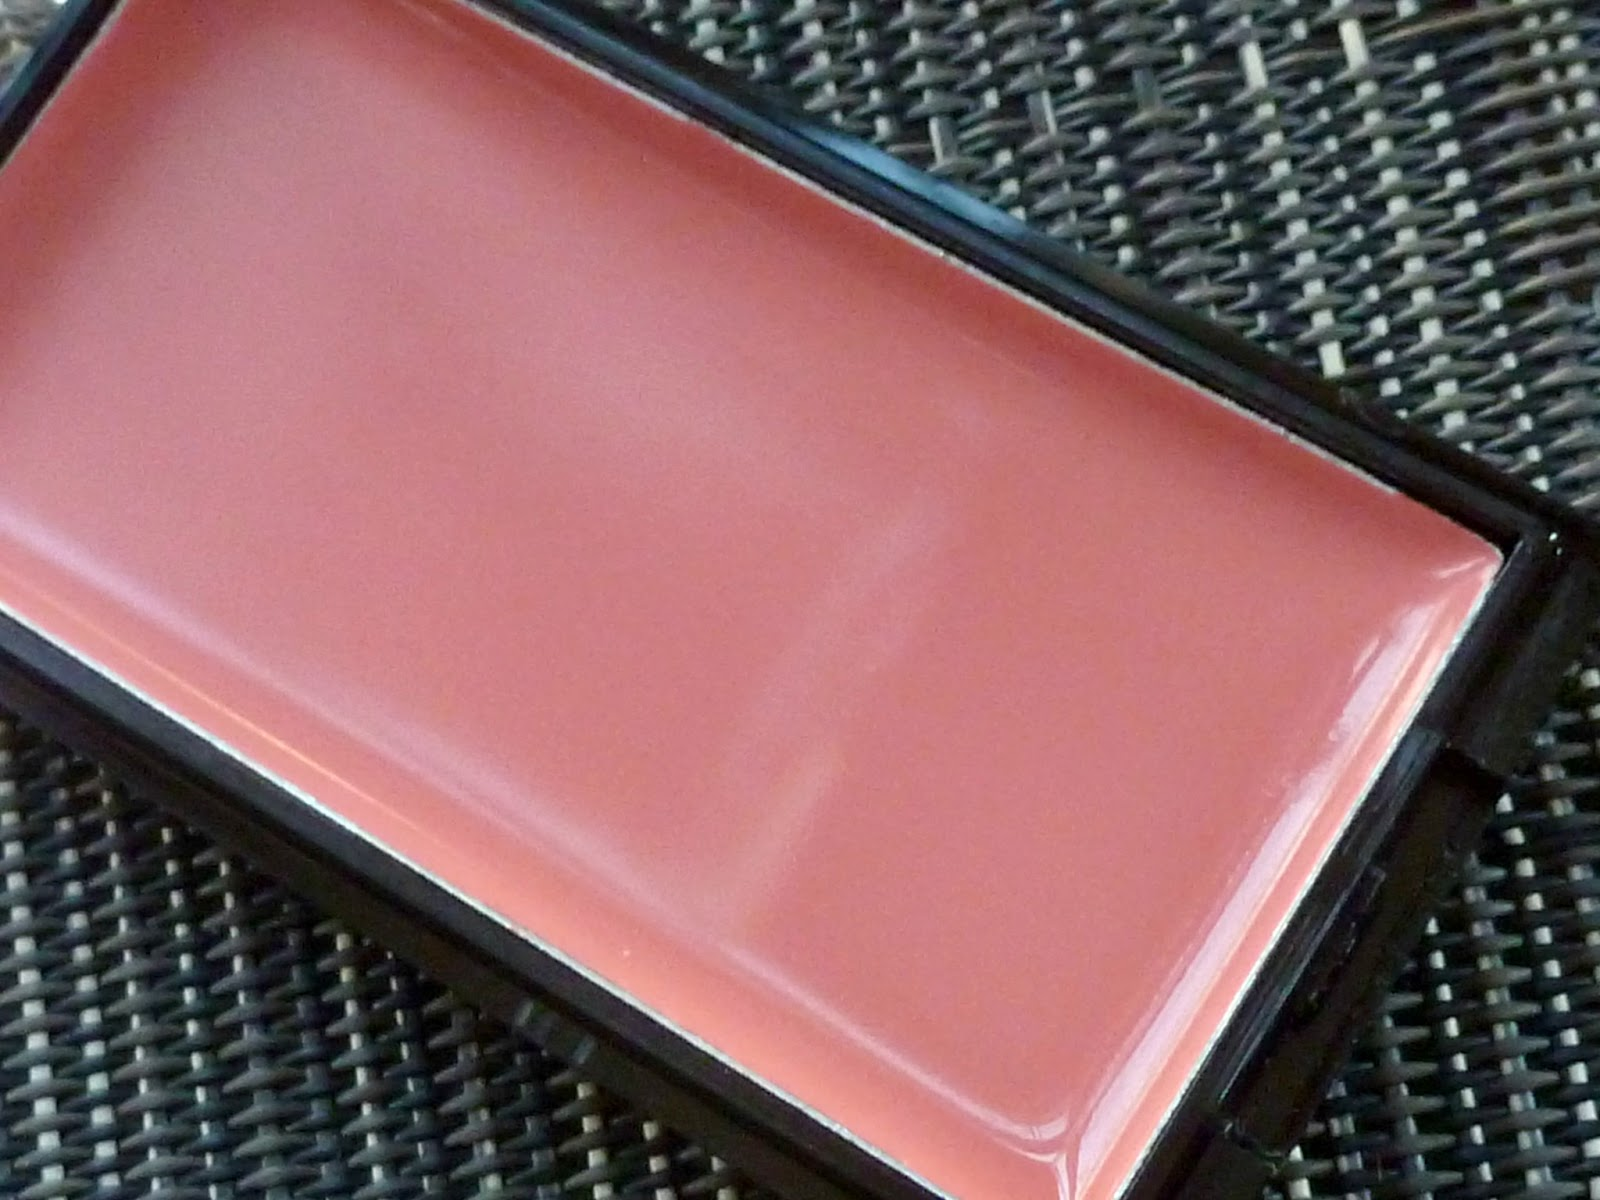 A picture of MUA Cream Blusher in Scrummy